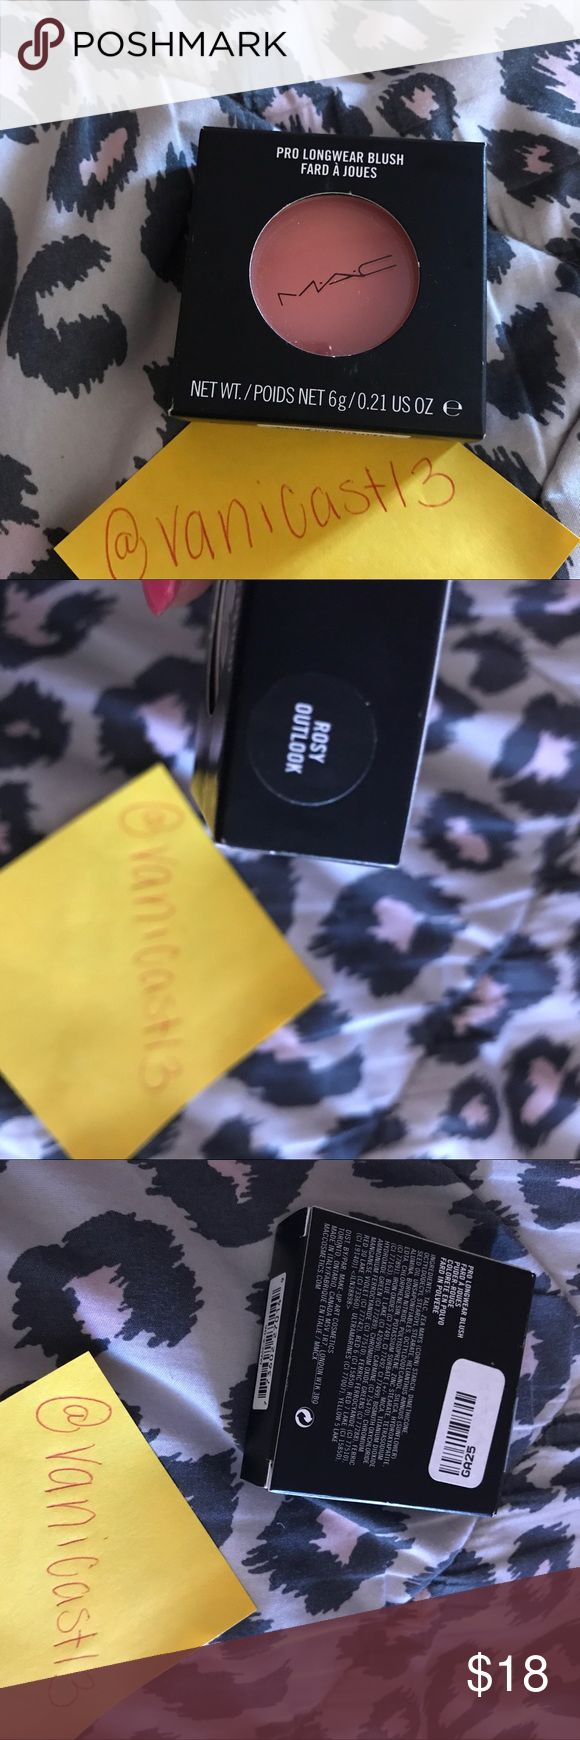 Authentic MAC COSMETICS BLUSH Brand new. Never swatched. Price is firm unless bundled MAC Cosmetics Makeup Blush